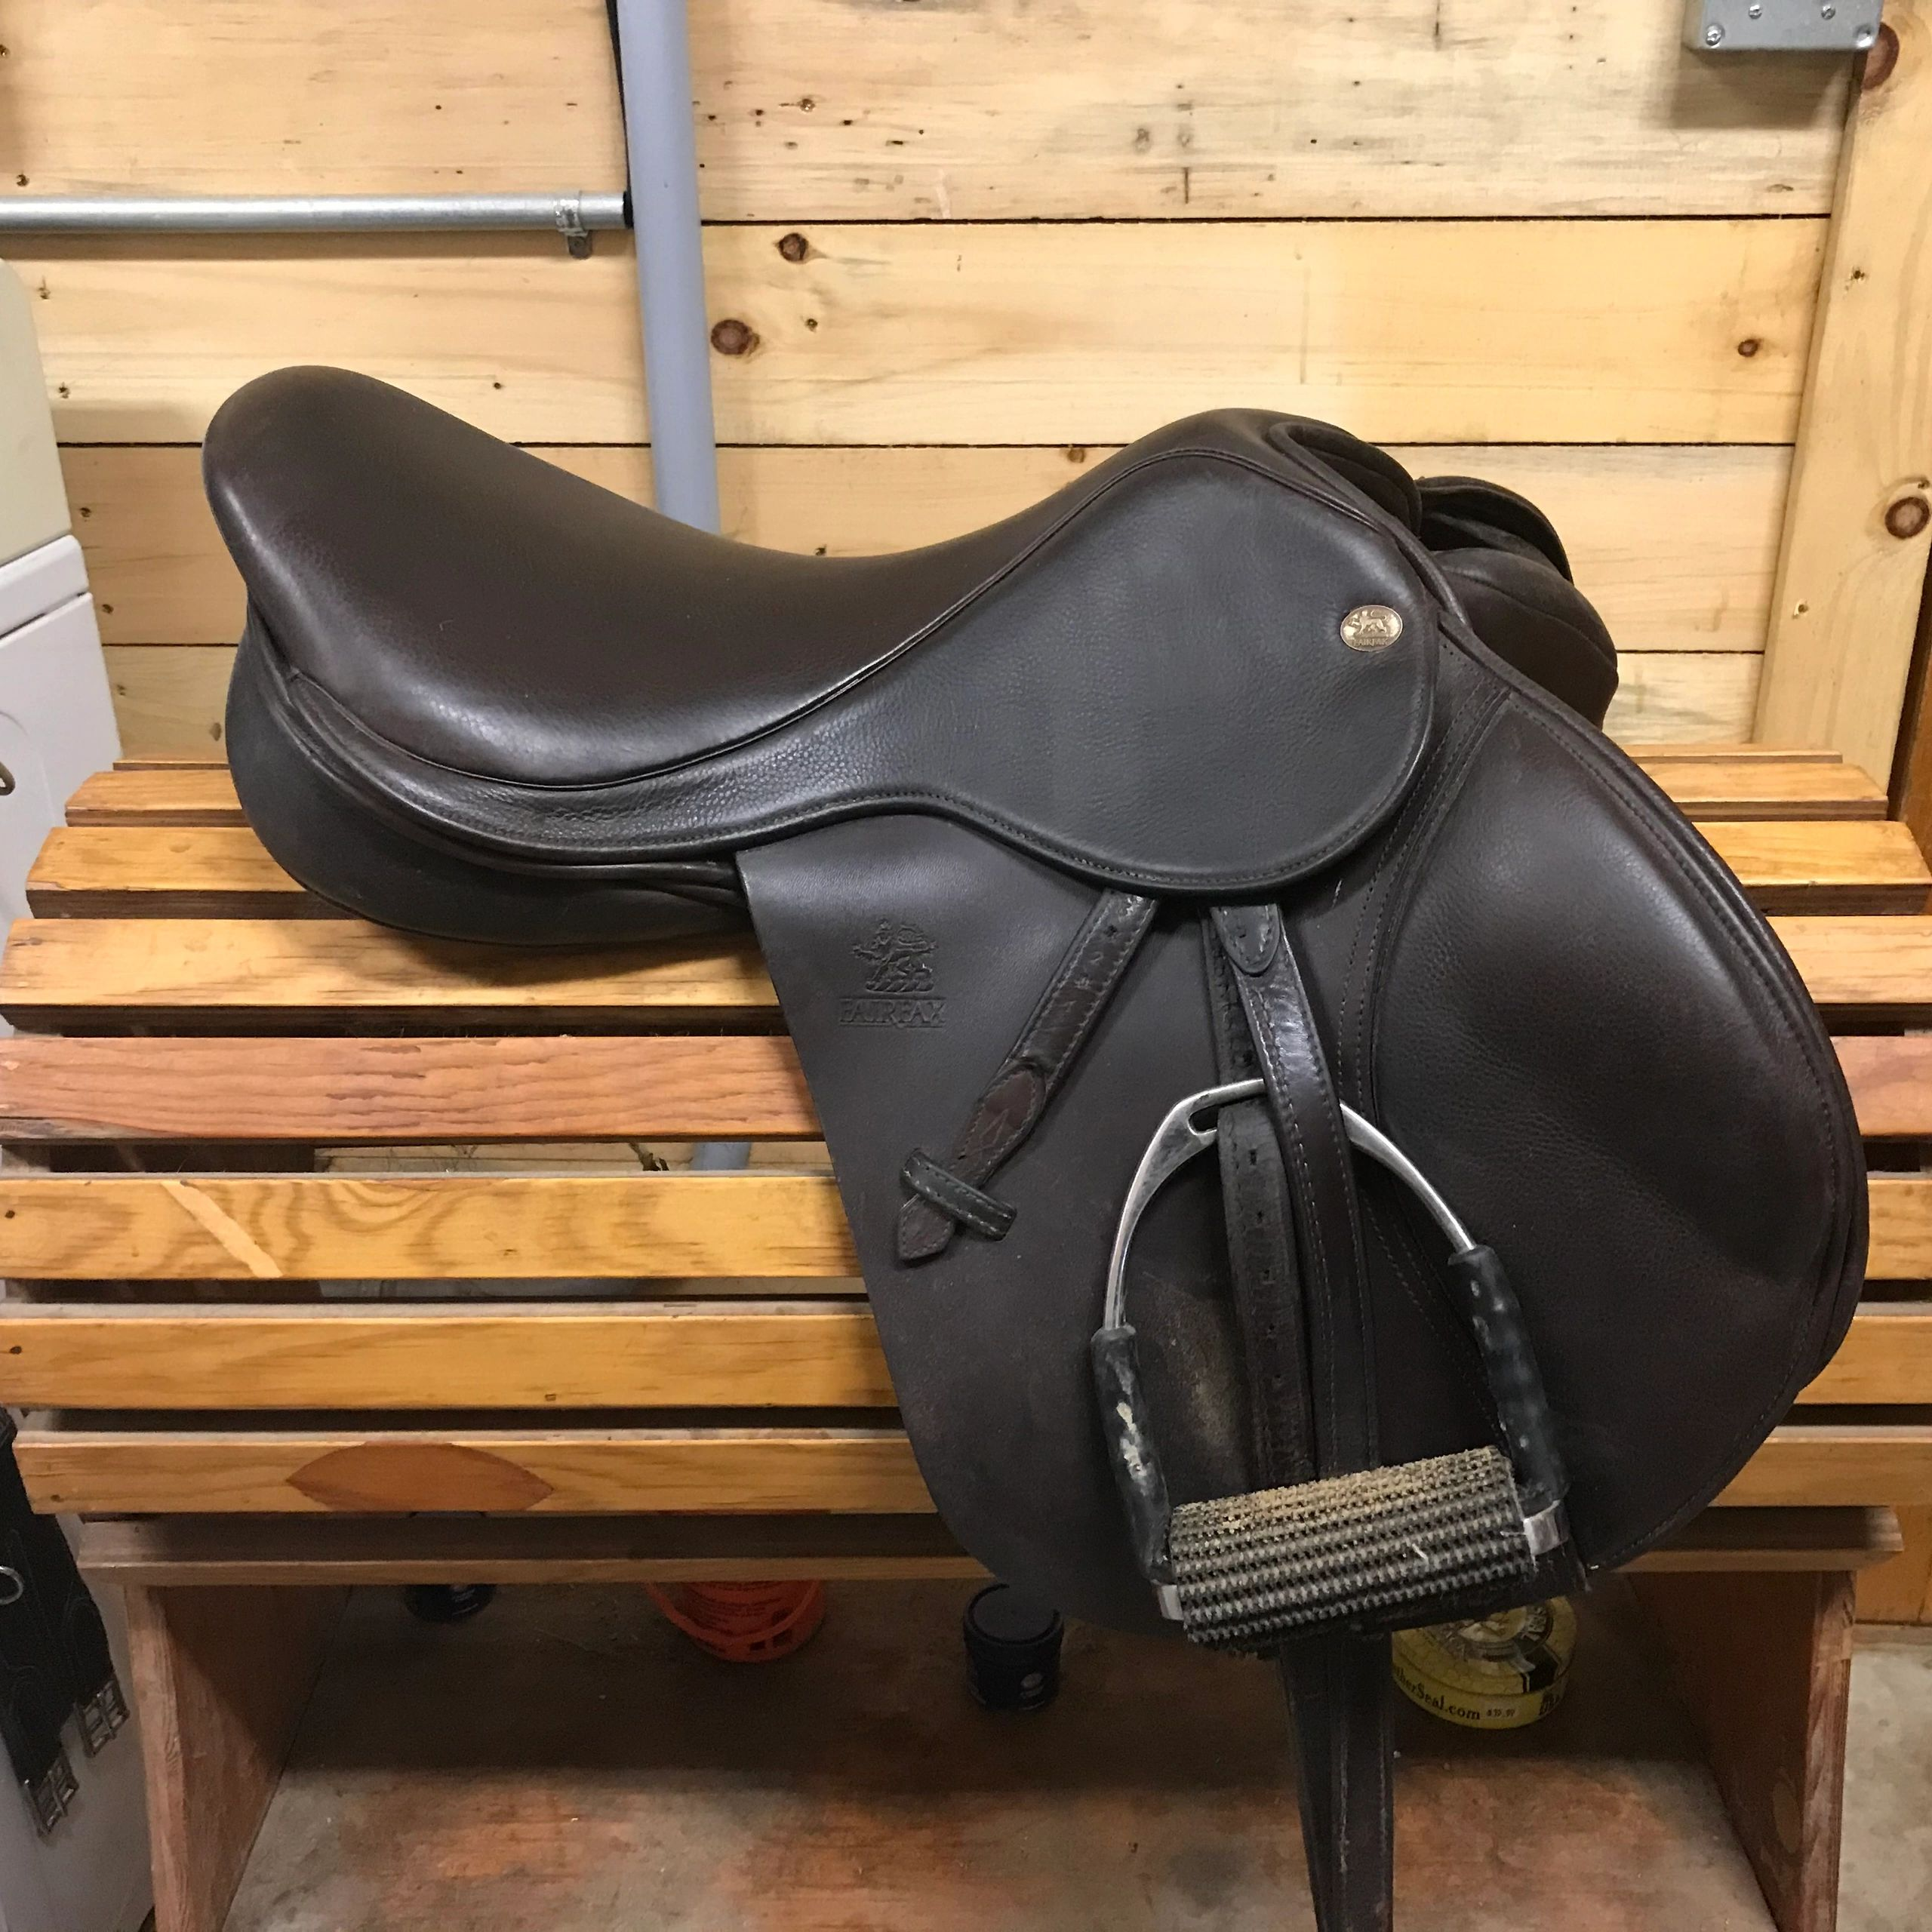 "{""blocks"":[{""key"":""20t5g"",""text"":""To start measuring your saddle place it on a secure saddle stand.  Make sure you can send accurate photos of your saddle."",""type"":""unstyled"",""depth"":0,""inlineStyleRanges"":[],""entityRanges"":[],""data"":{}}],""entityMap"":{}}"